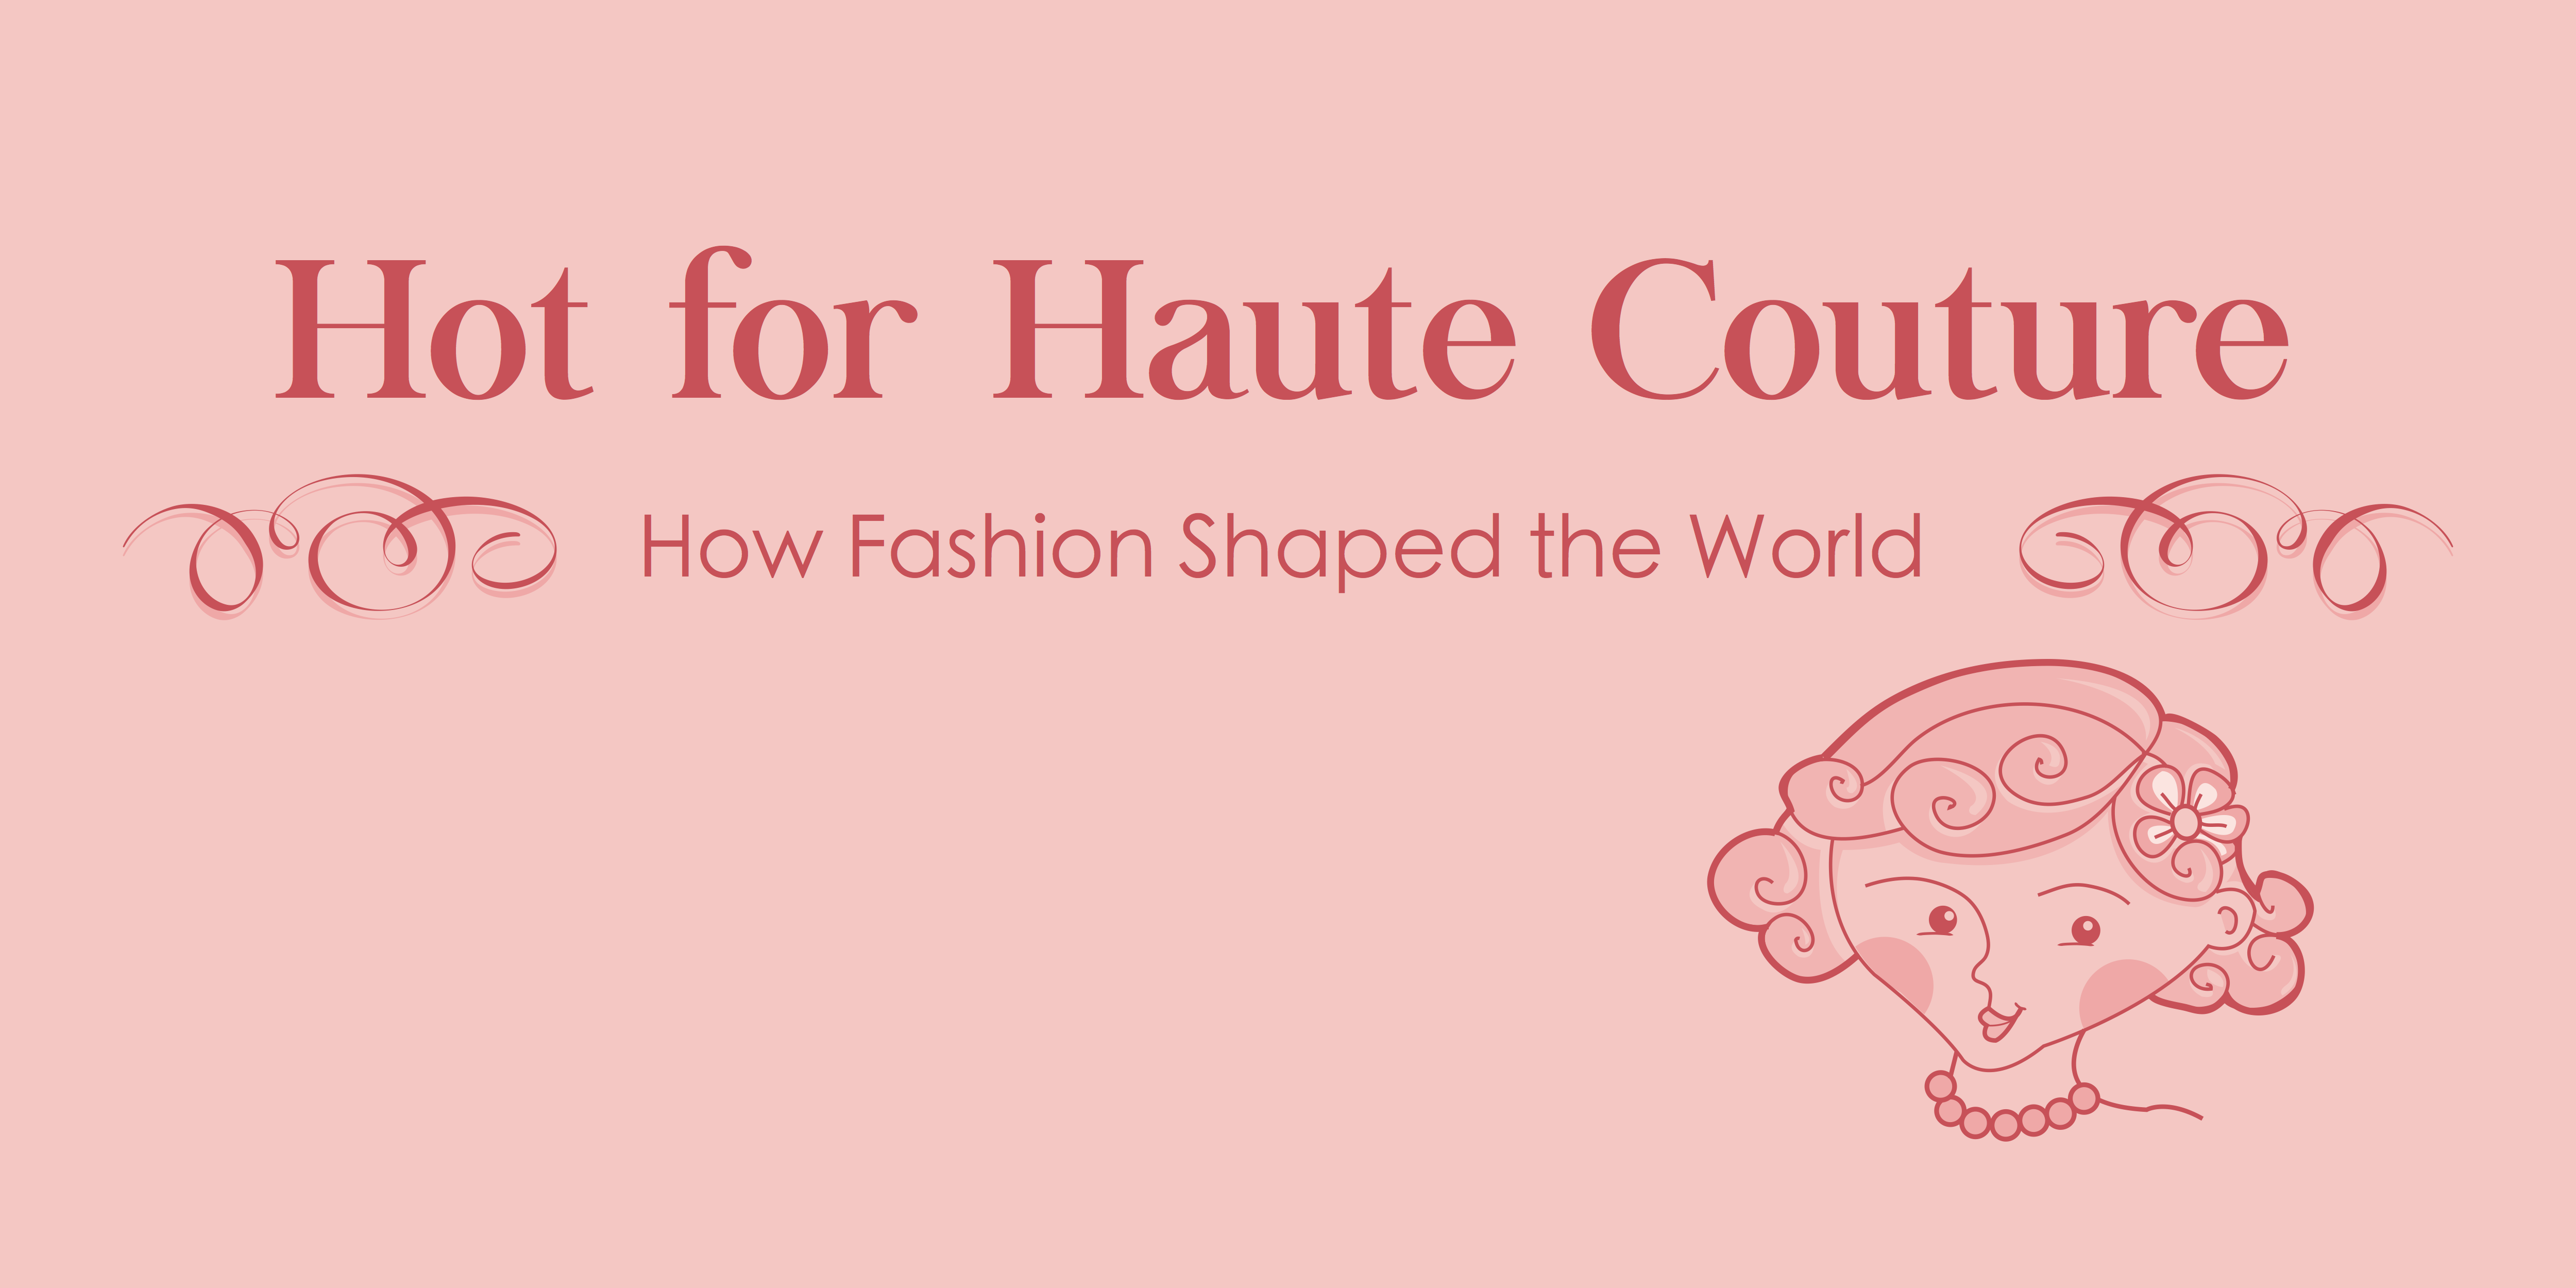 Hot for Haute Couture